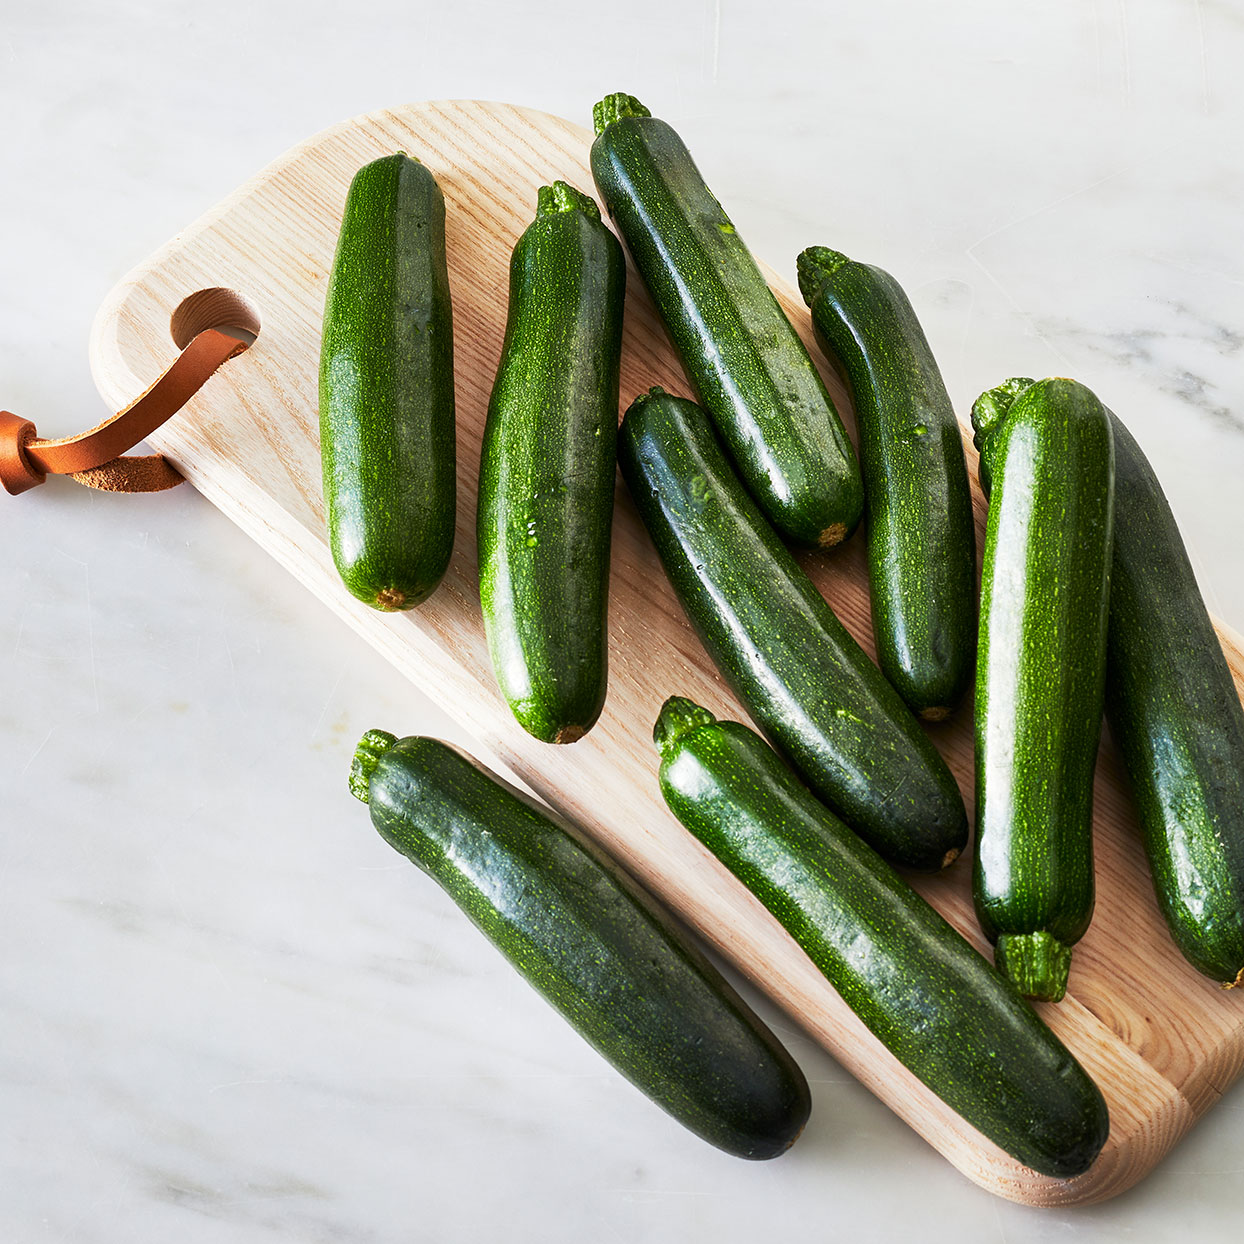 How To Cook Zucchini Eatingwell